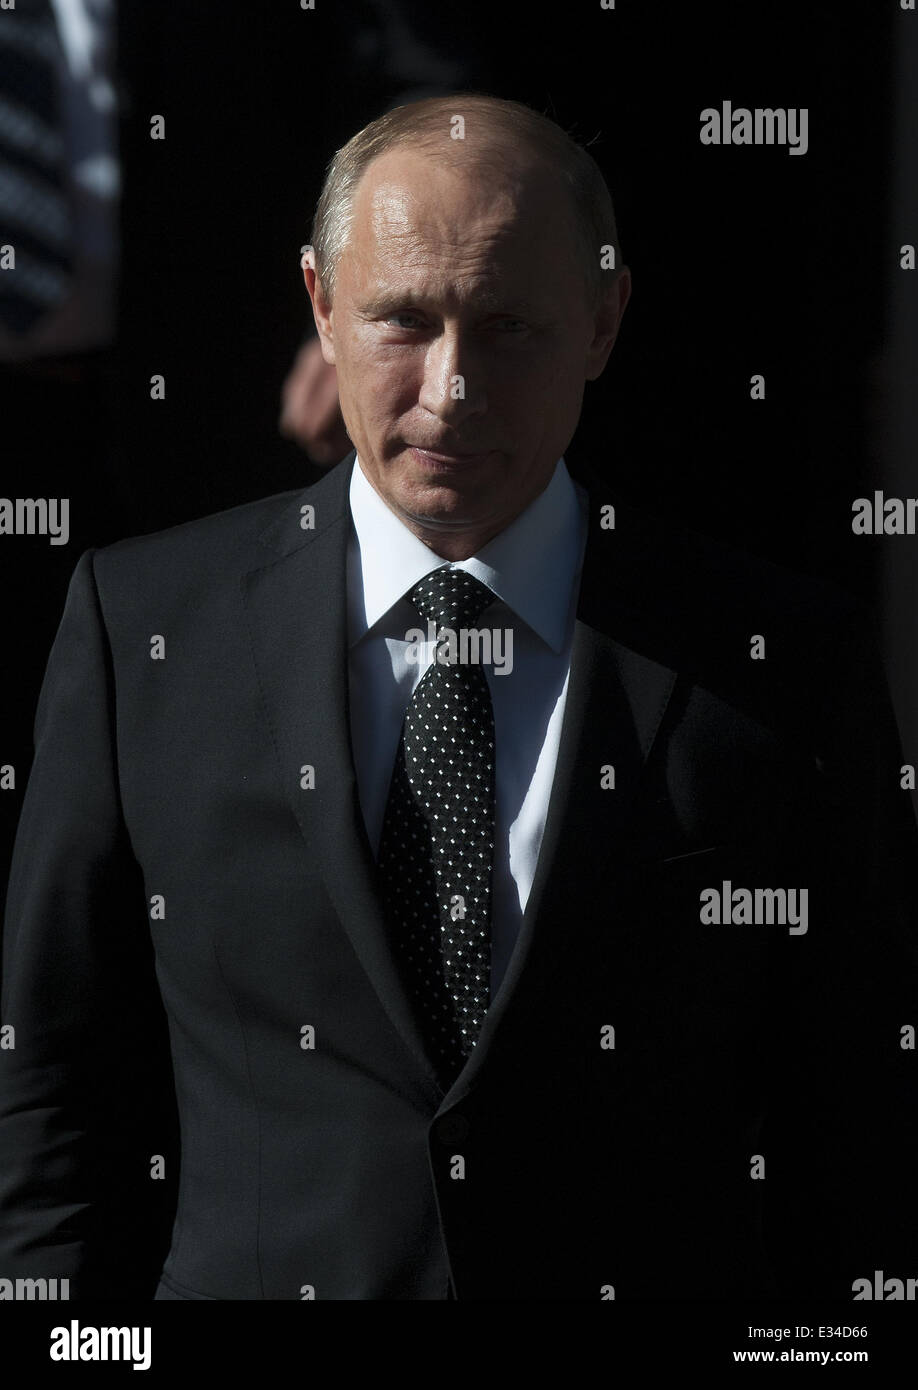 Russian President Vladimir Putin leaves 10 Downing Street after meeting with Prime Minister David Cameron  Featuring: Stock Photo